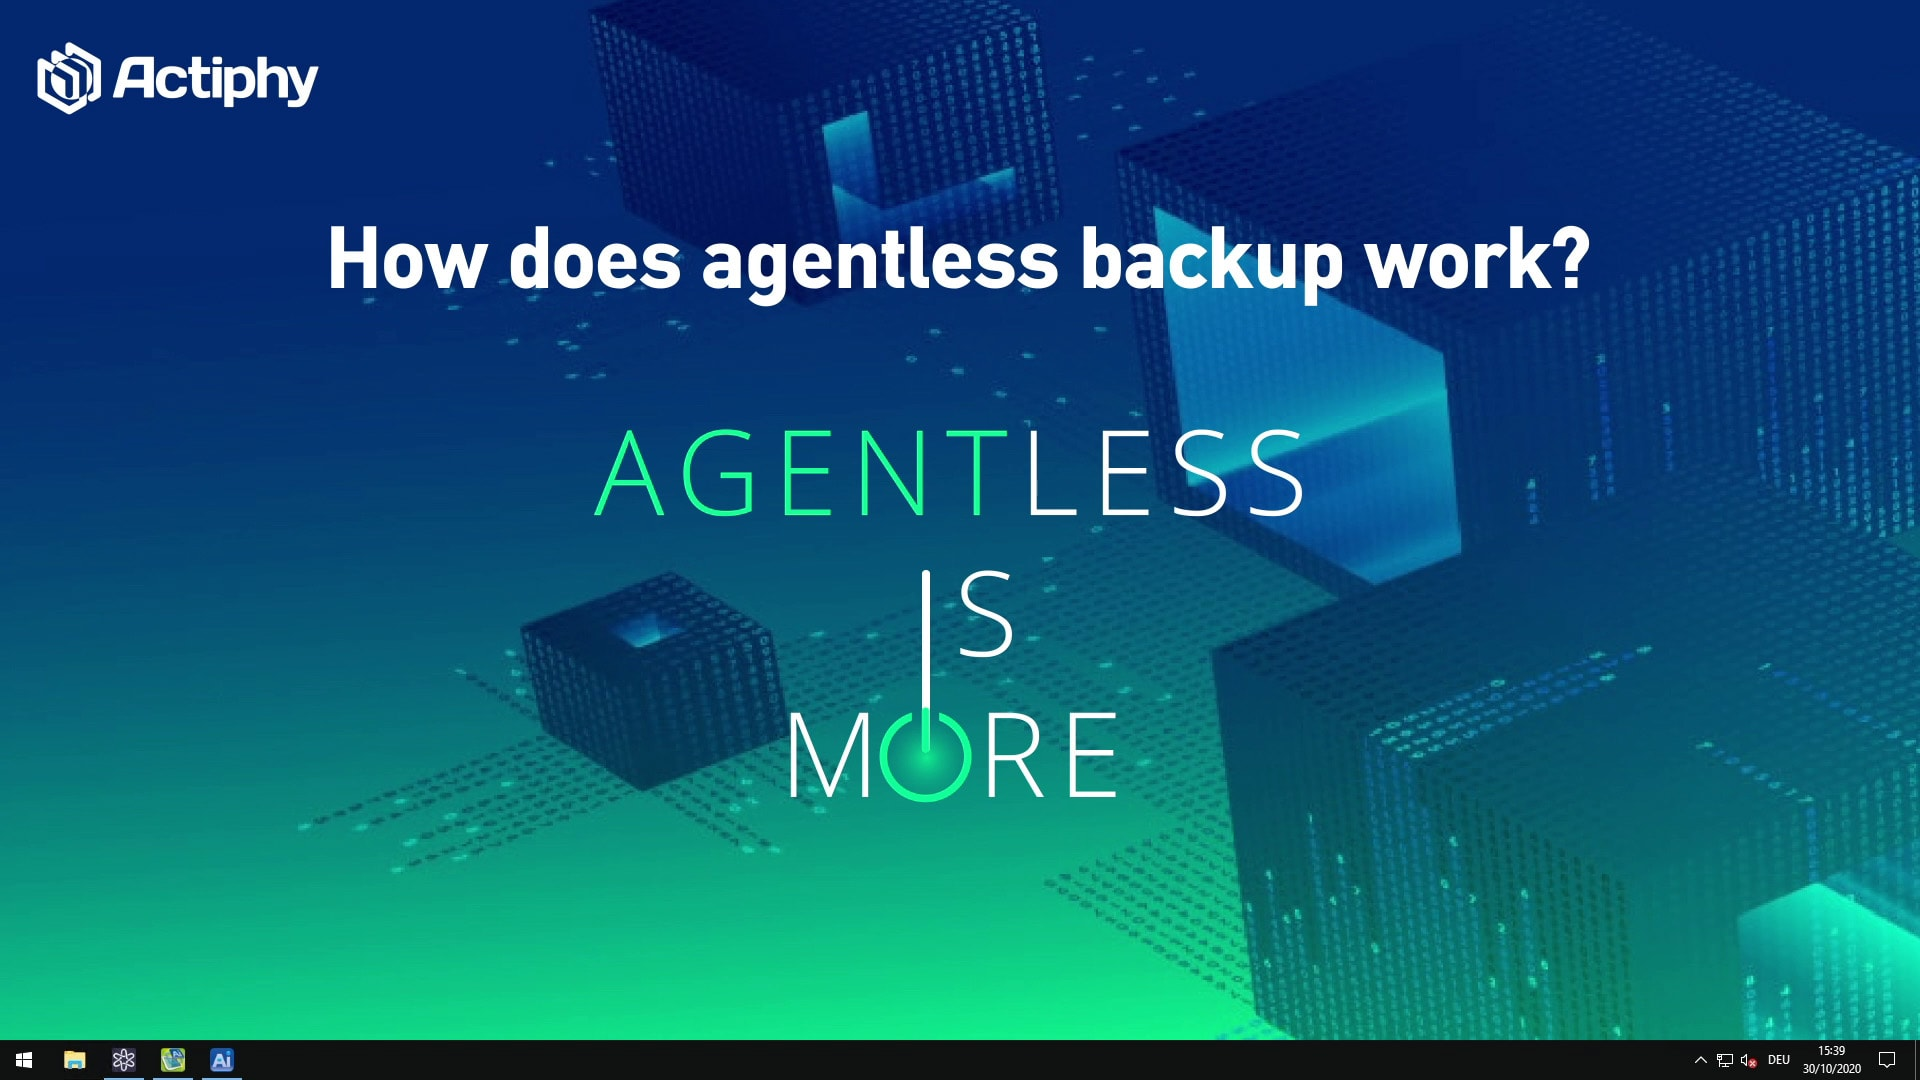 agentless backup